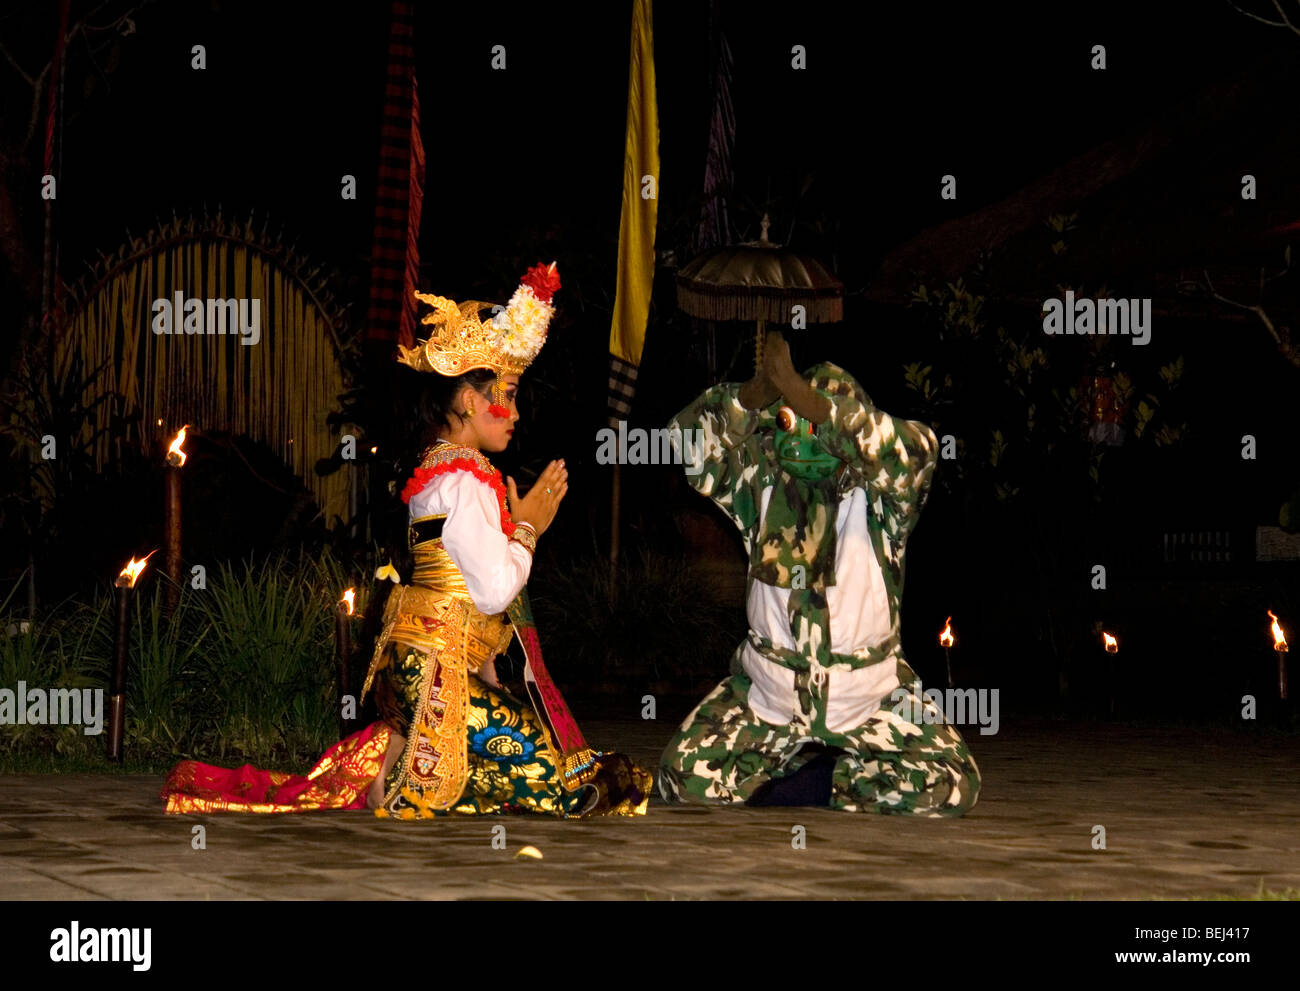 The Princess and the Prince Charming in the Frog dance (Bali). La Princesse et le Prince de la danse de la grenouille - Stock Image